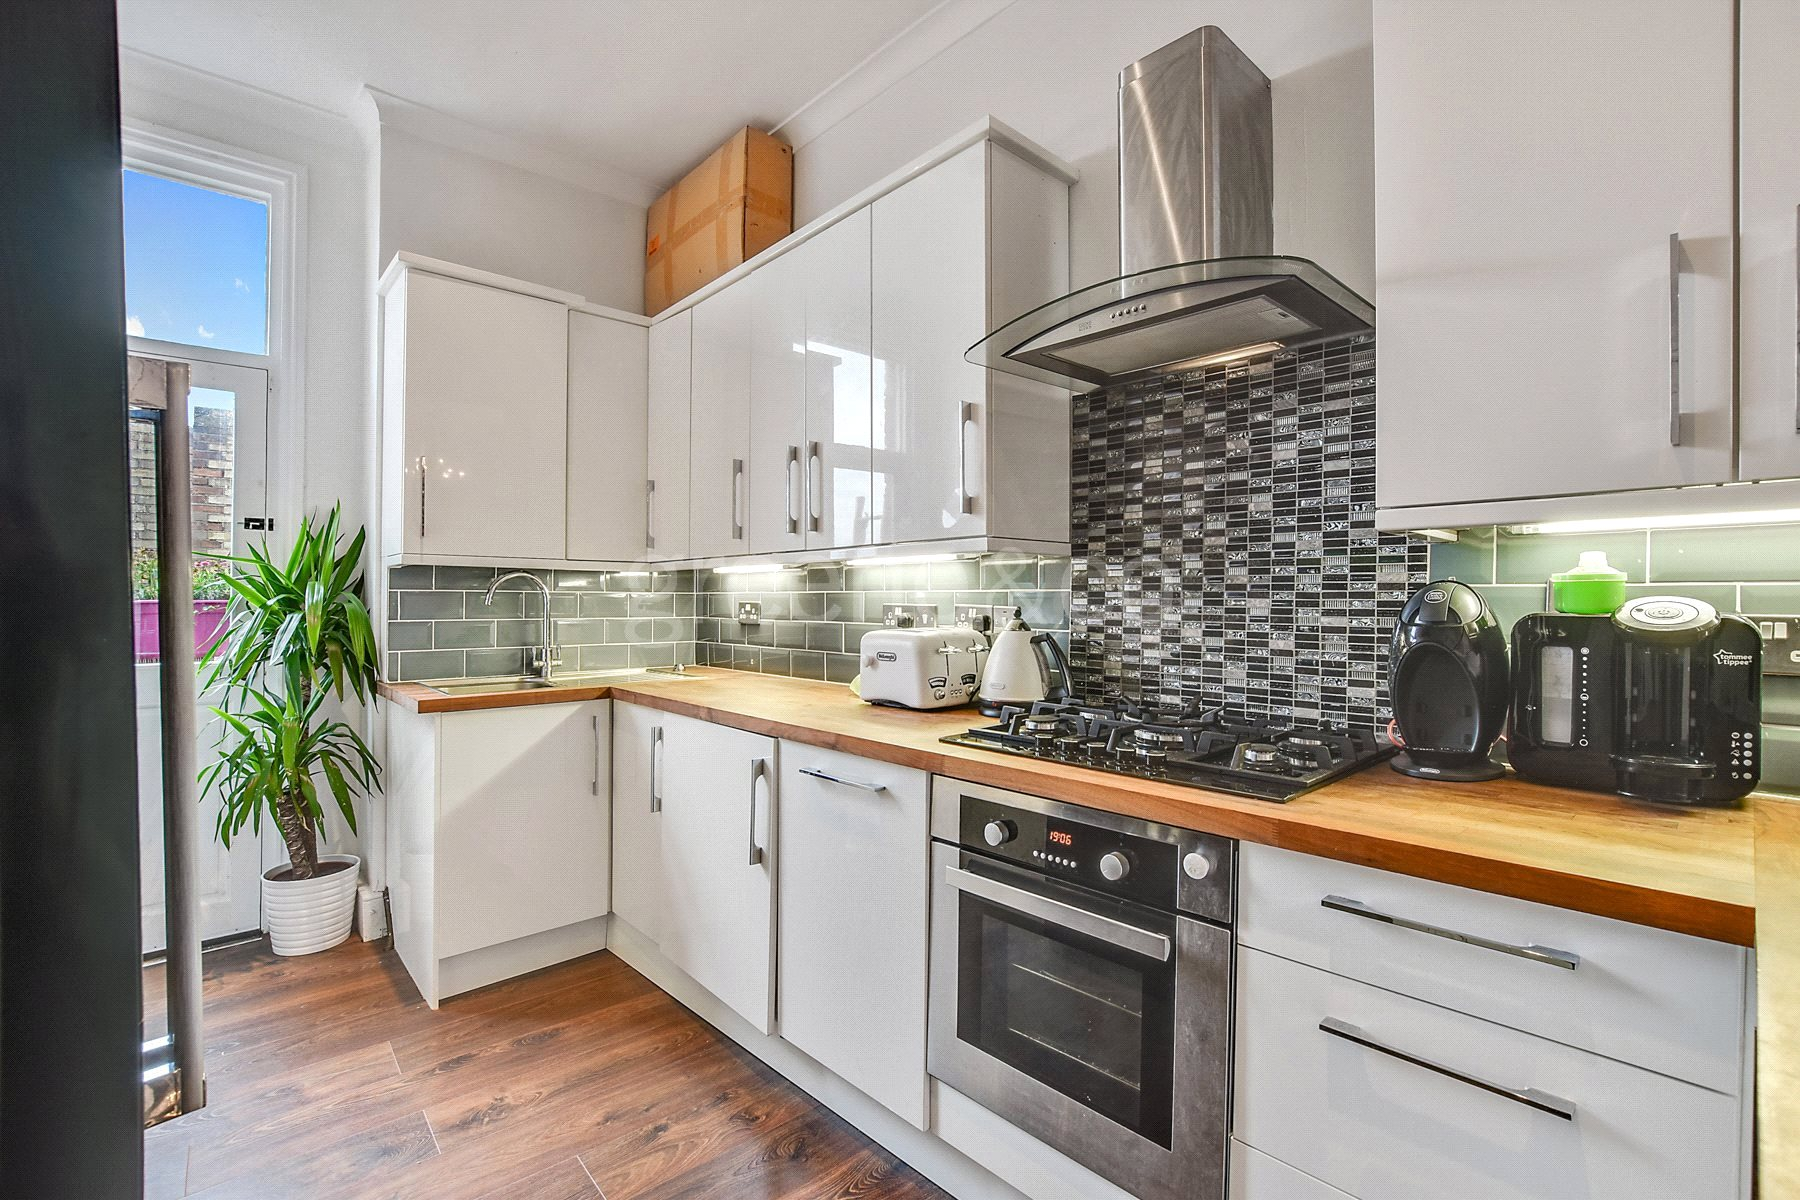 2 Bedrooms Flat for sale in Tottenham Lane, Crouch End, London, N8